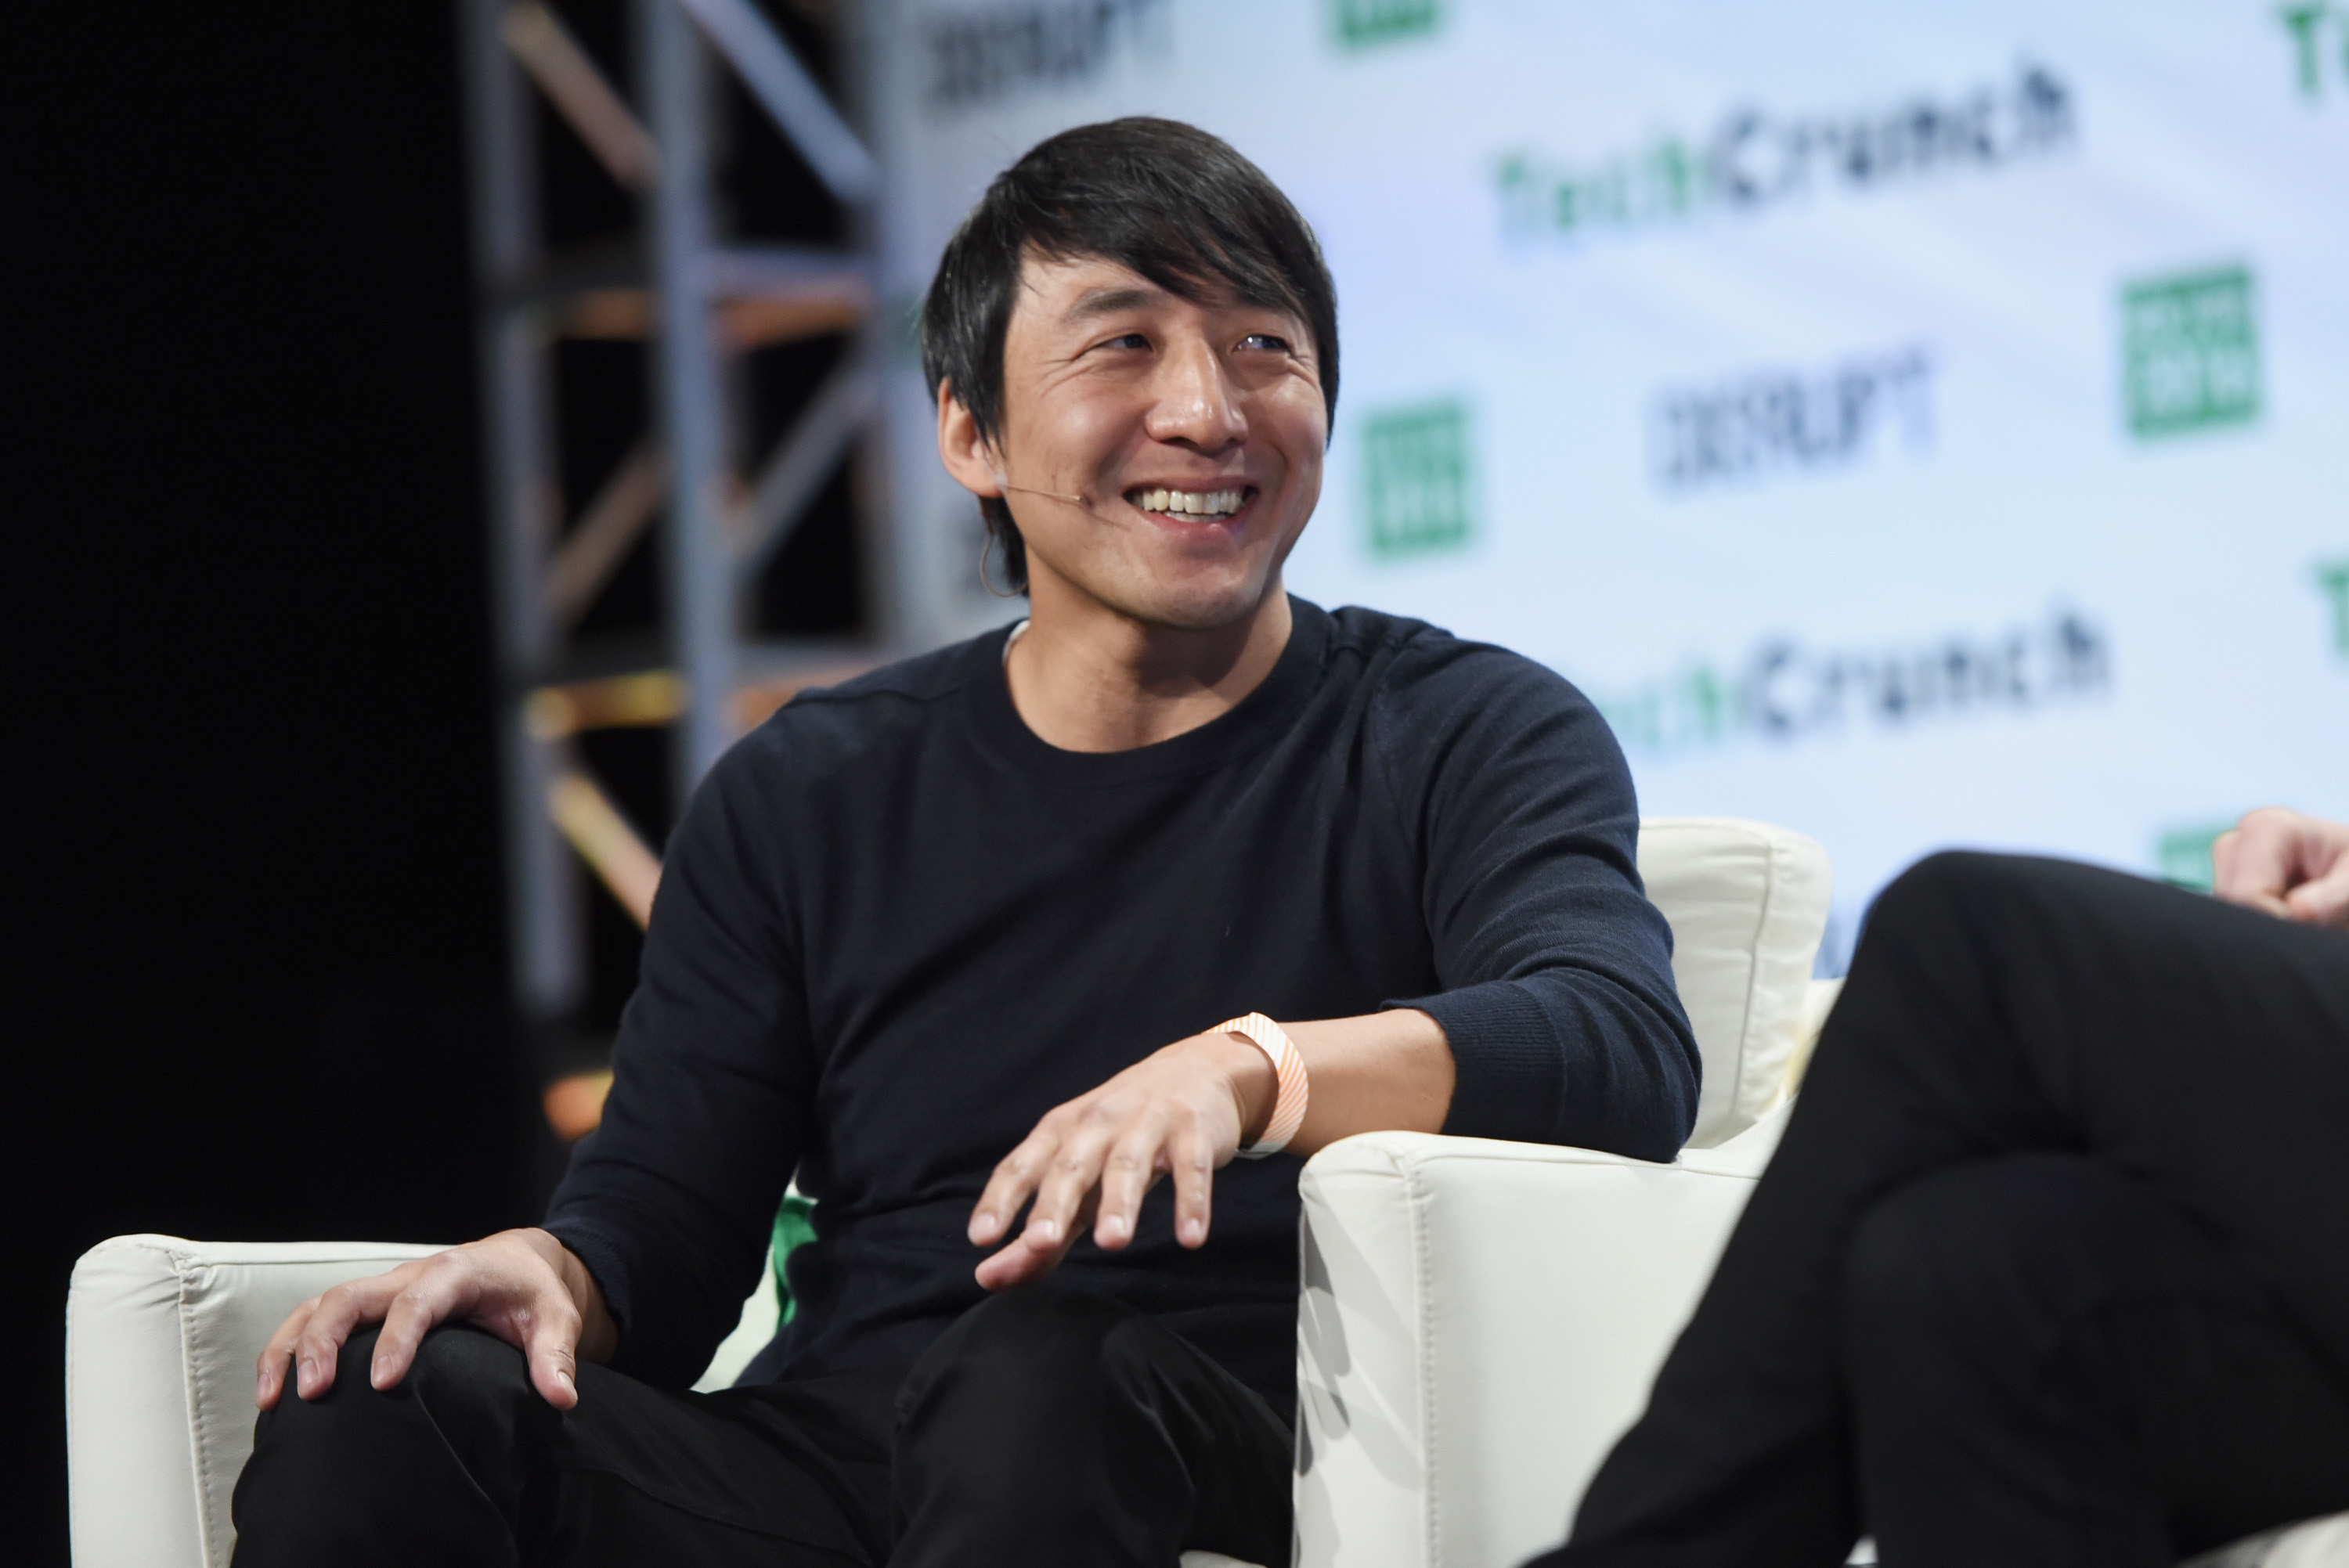 Co-Founder and CEO of Giphy Alex Chung speaks onstage during TechCrunch Disrupt NY 2016 at Brooklyn Cruise Terminal on May 9, 2016 in New York City.